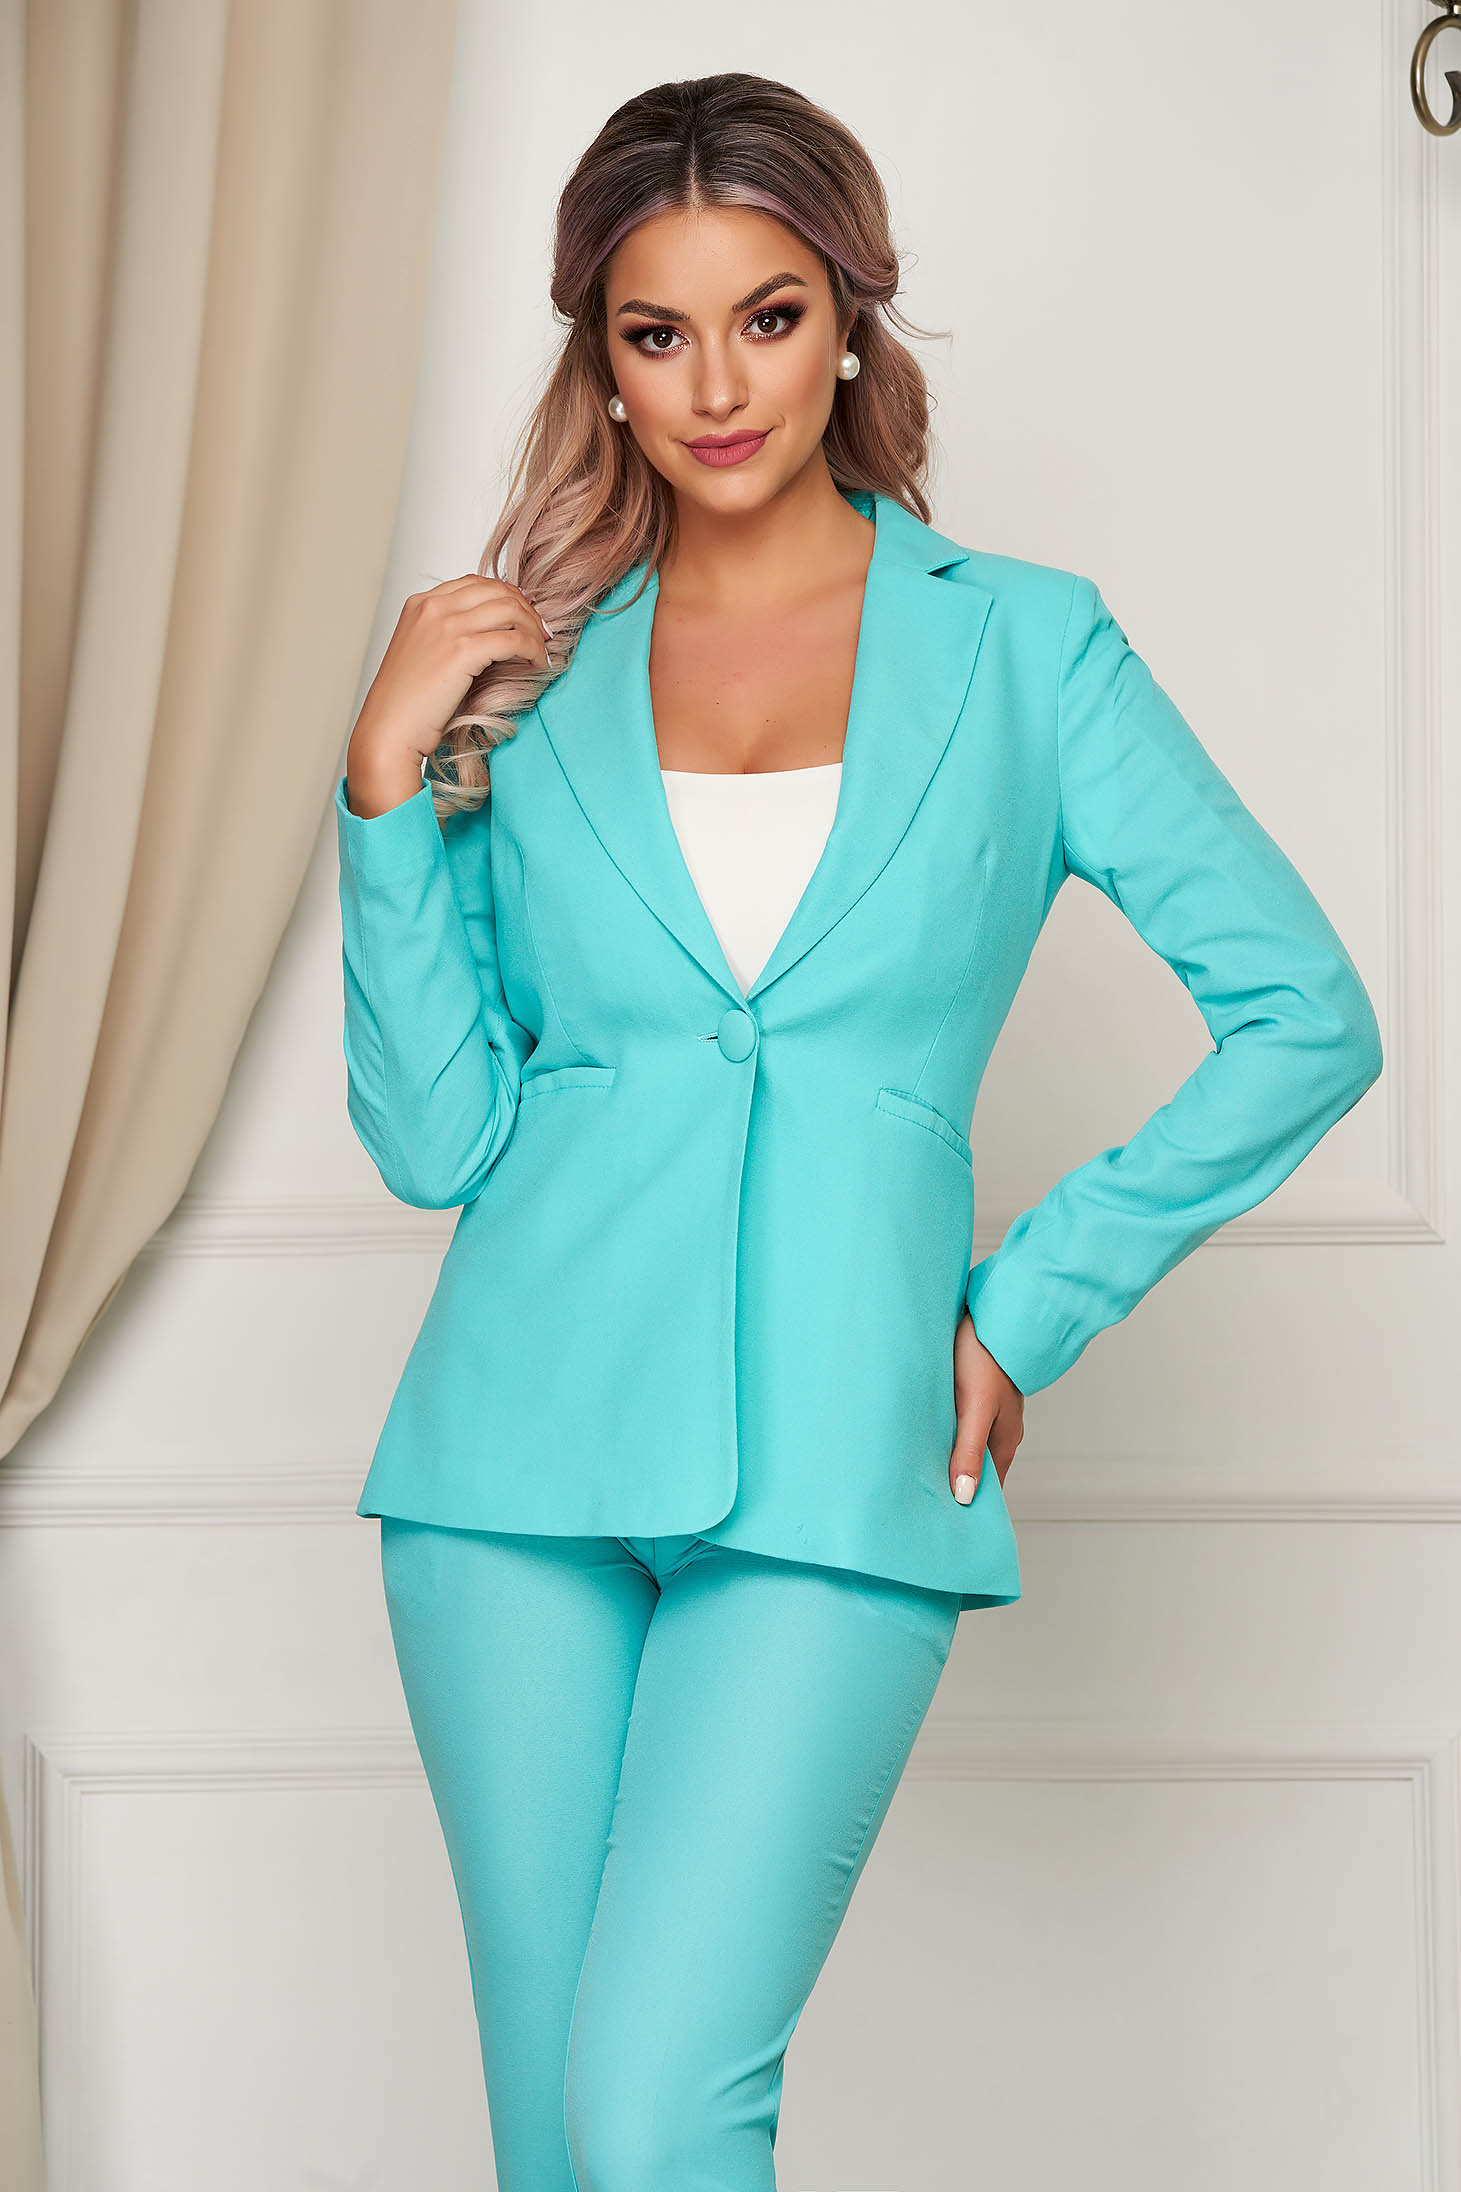 Turquoise jacket office arched cut slightly elastic fabric